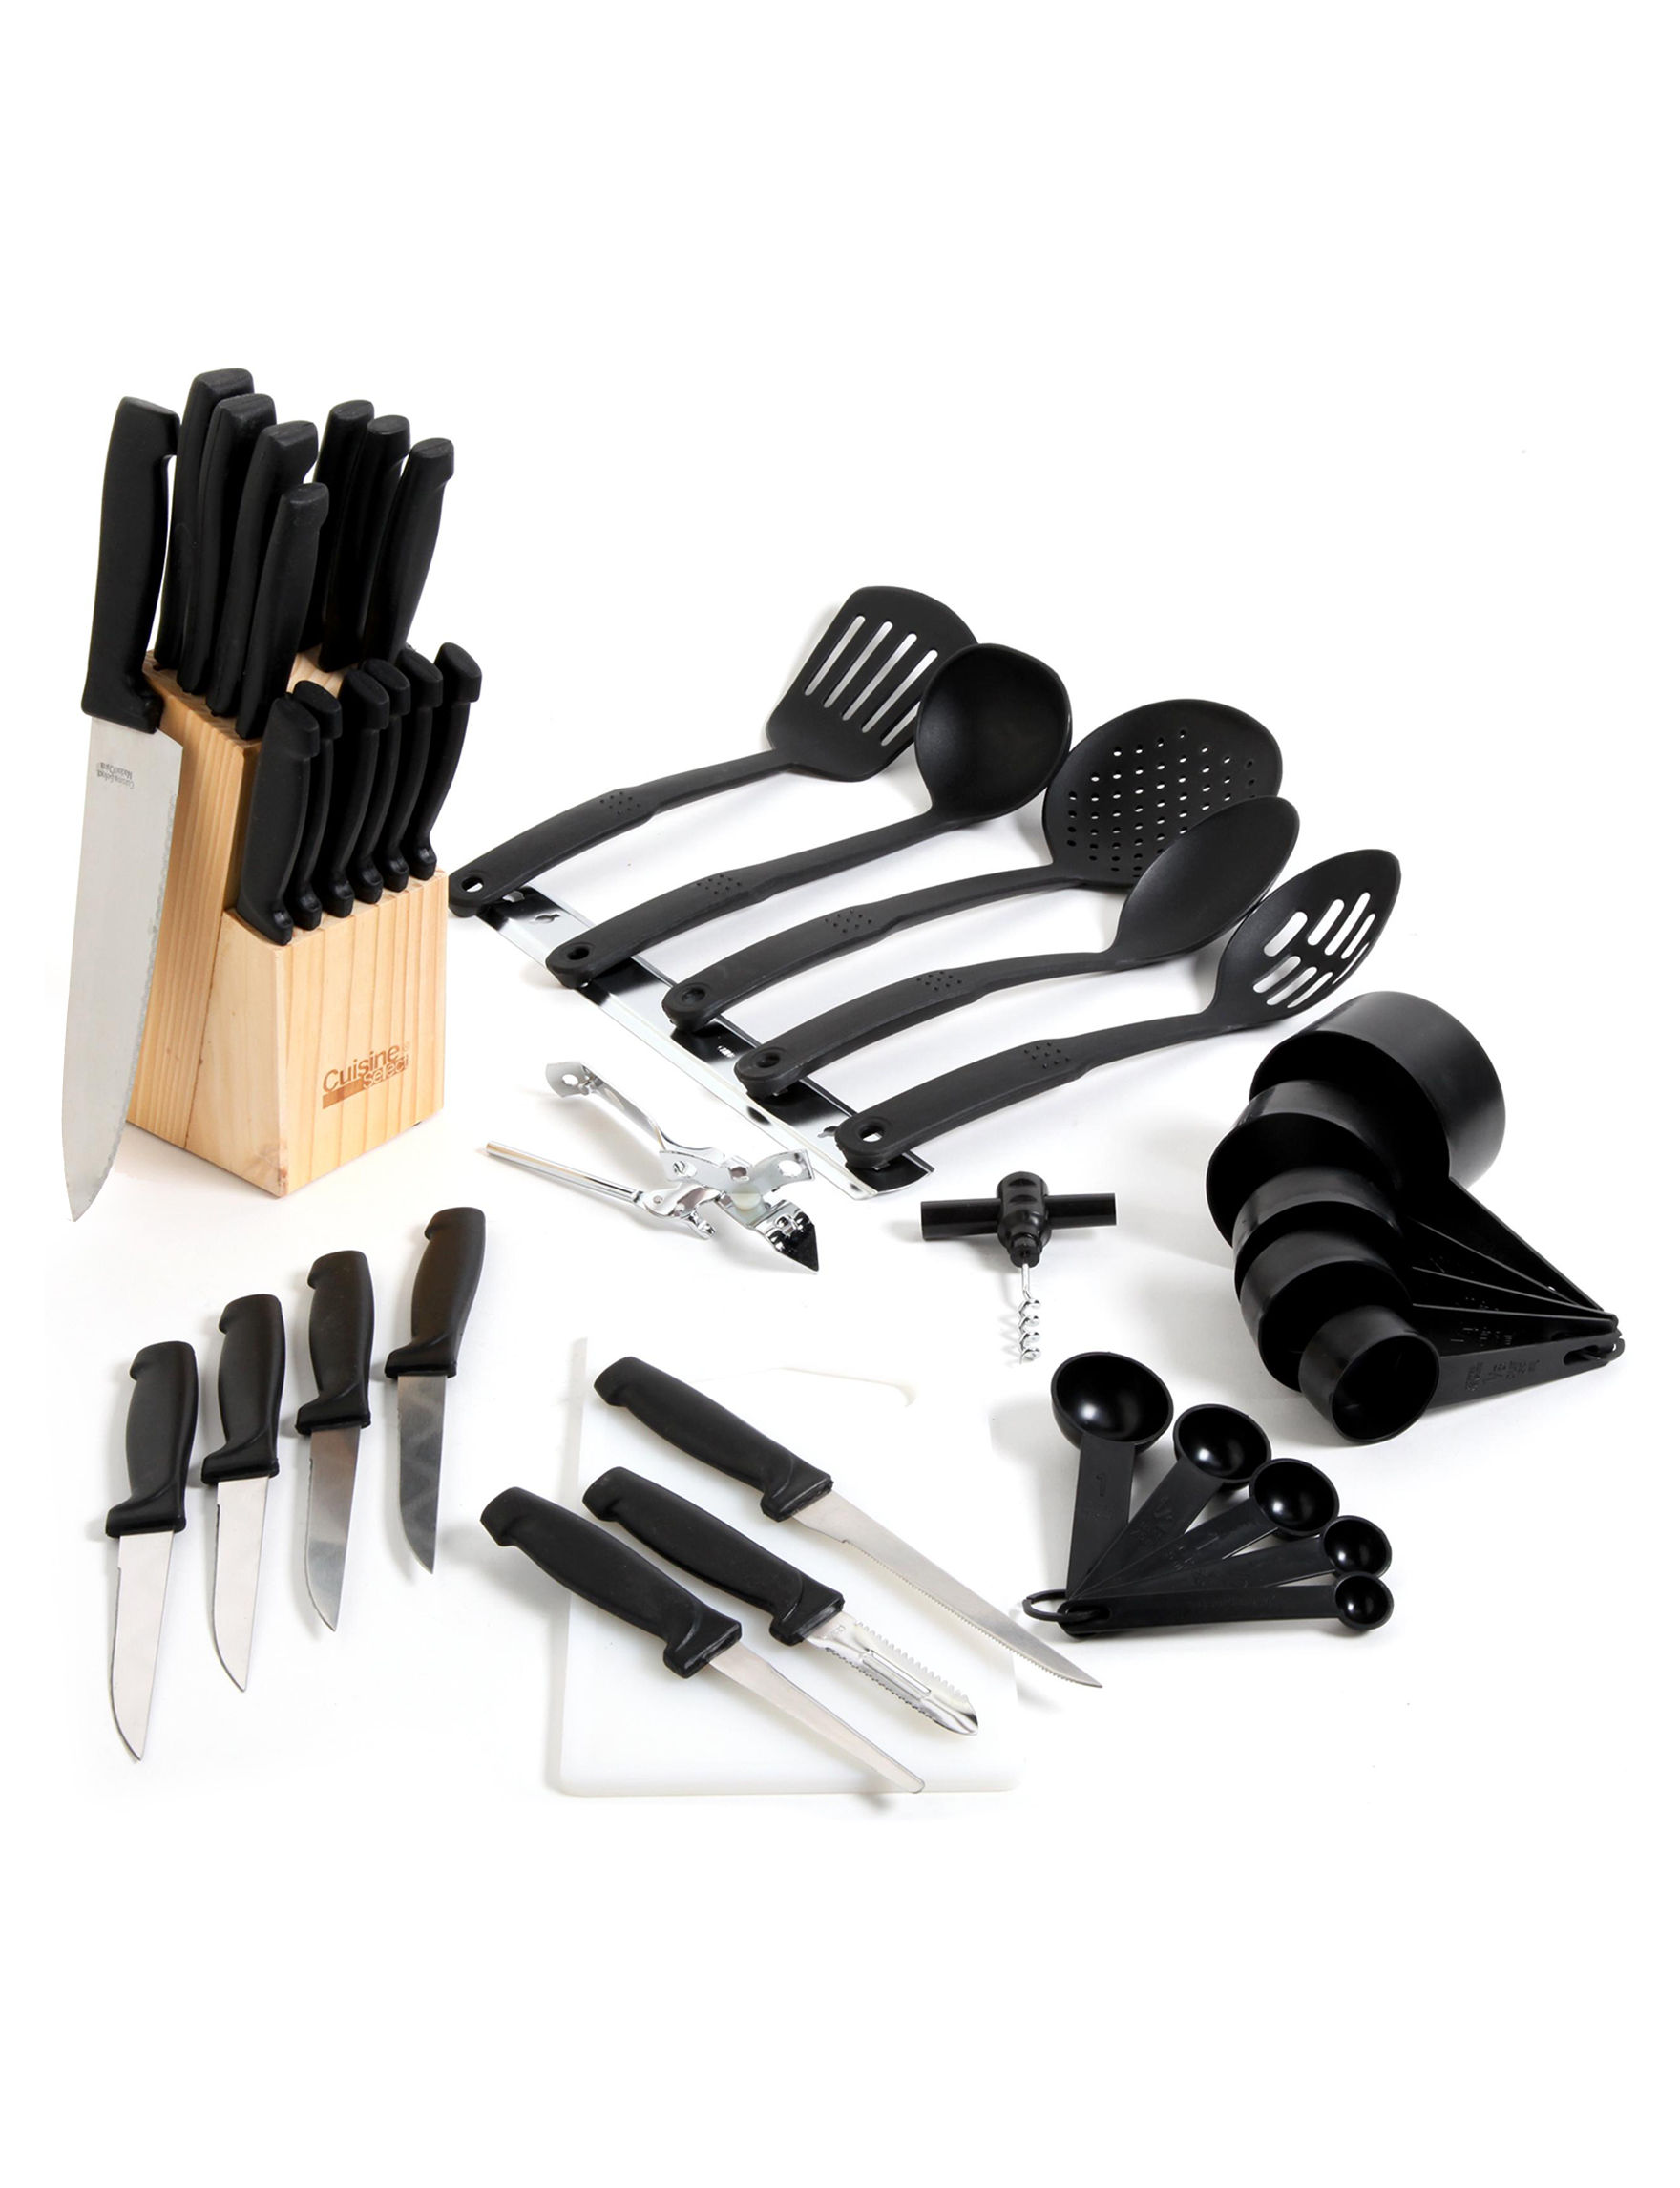 Gibson Black Kitchen Utensils Knives & Cutlery Prep & Tools